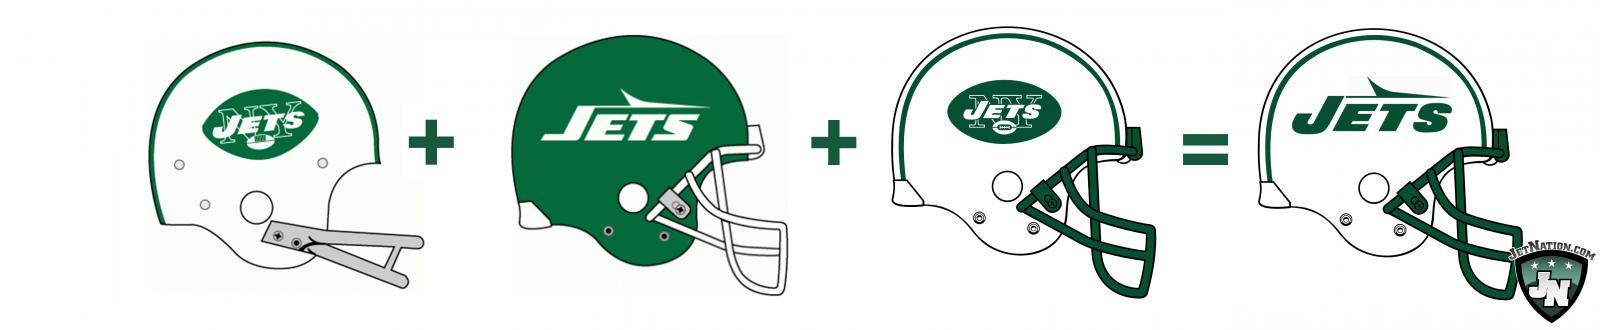 new-york-jets-helmet evolution 2019 copy.jpg